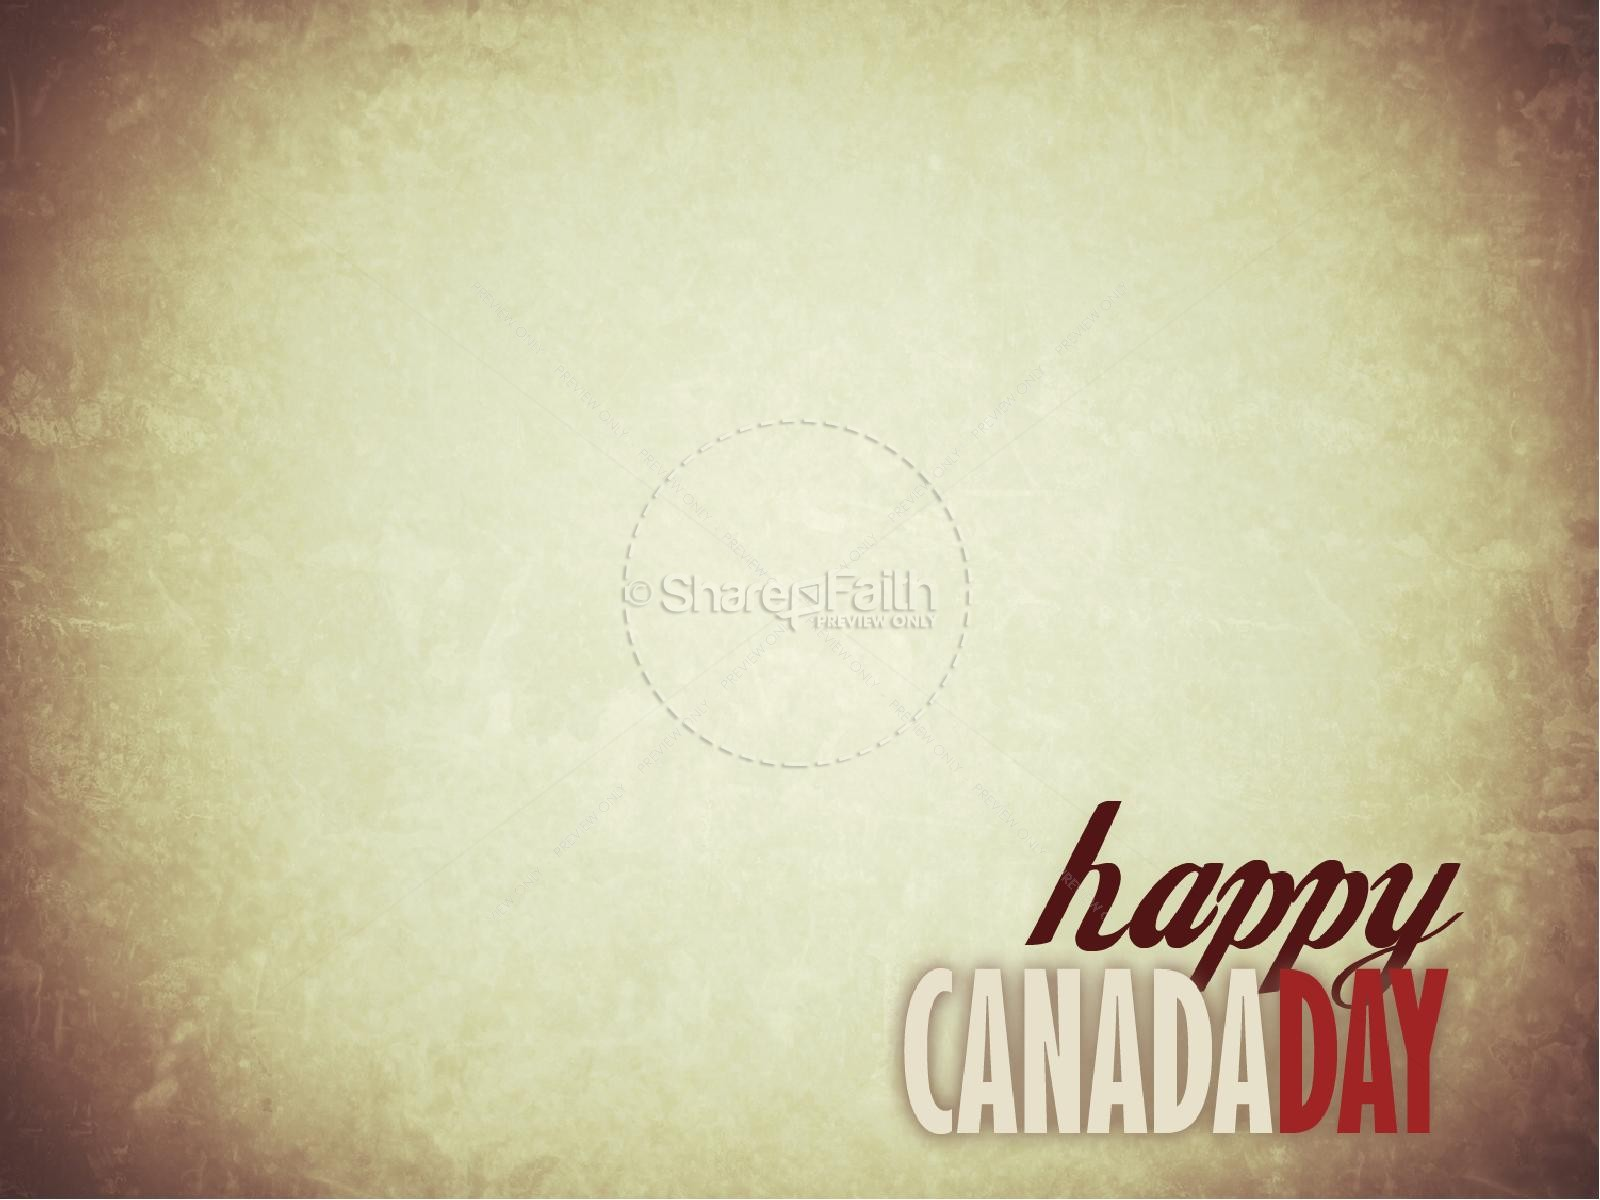 canada day powerpoint presentation independence day powerpoints. Black Bedroom Furniture Sets. Home Design Ideas